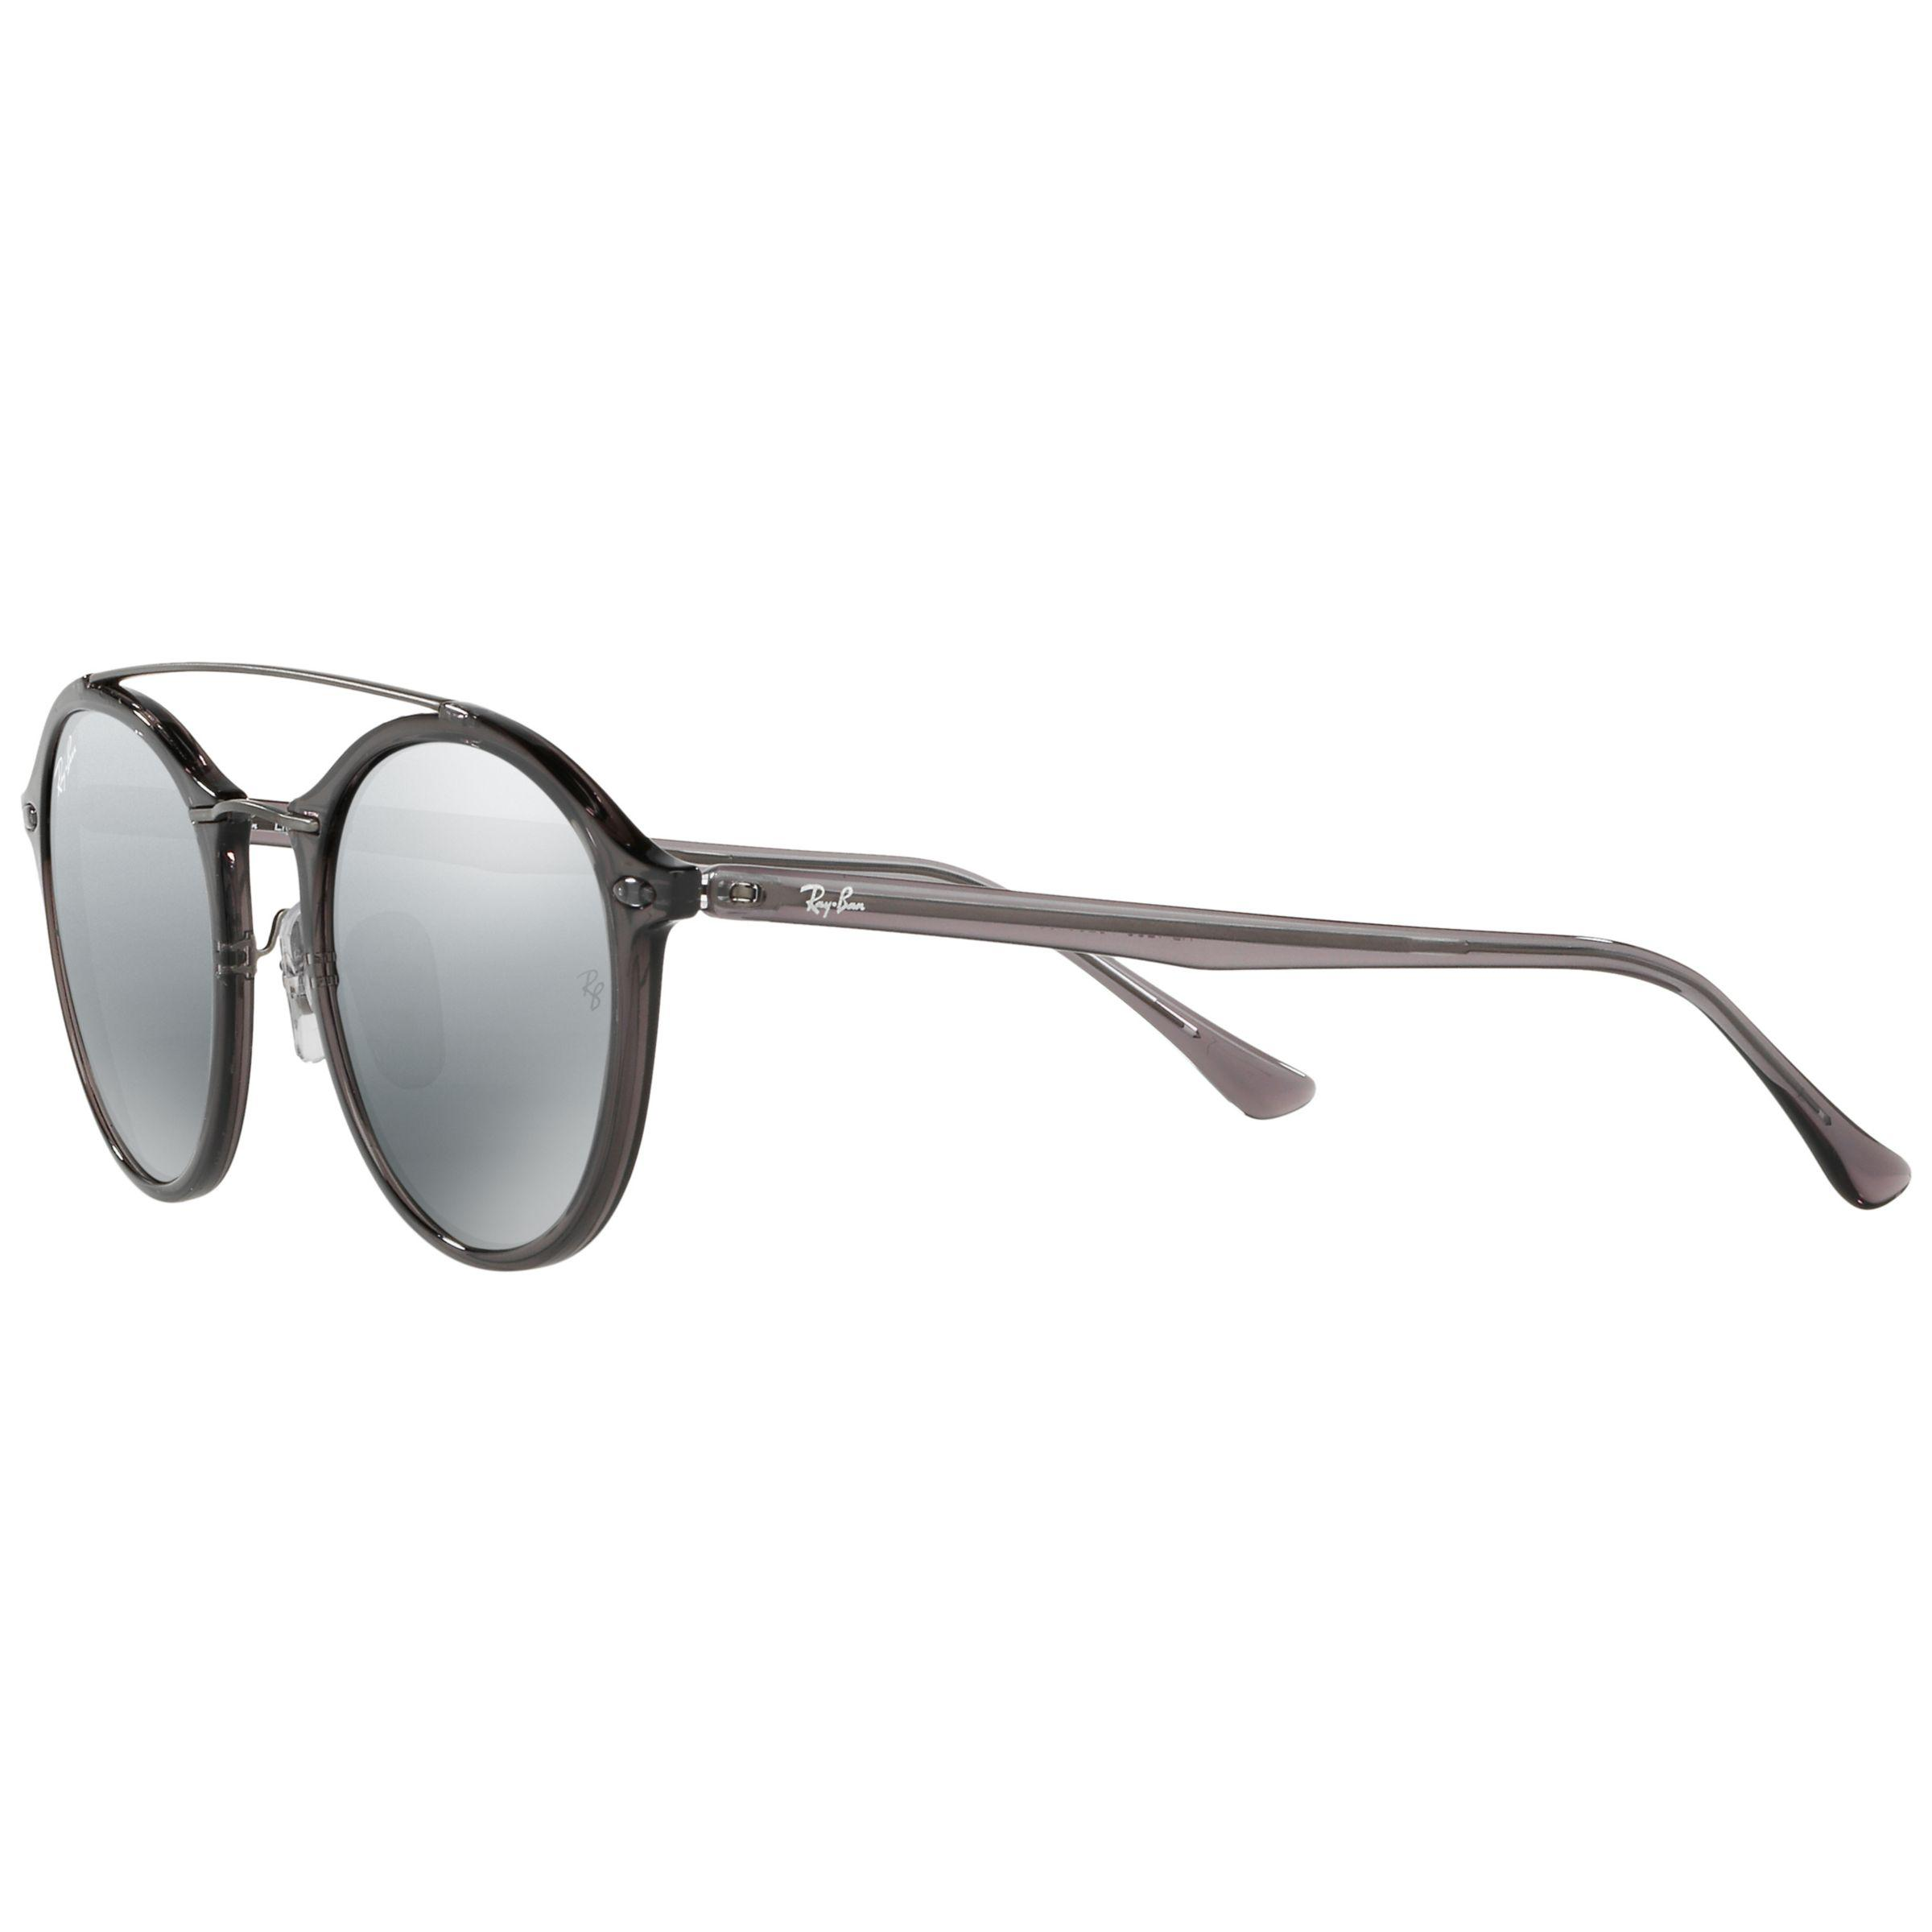 5f7d9f14f0 Ray-Ban Rb4266 Oval Sunglasses in Gray - Lyst